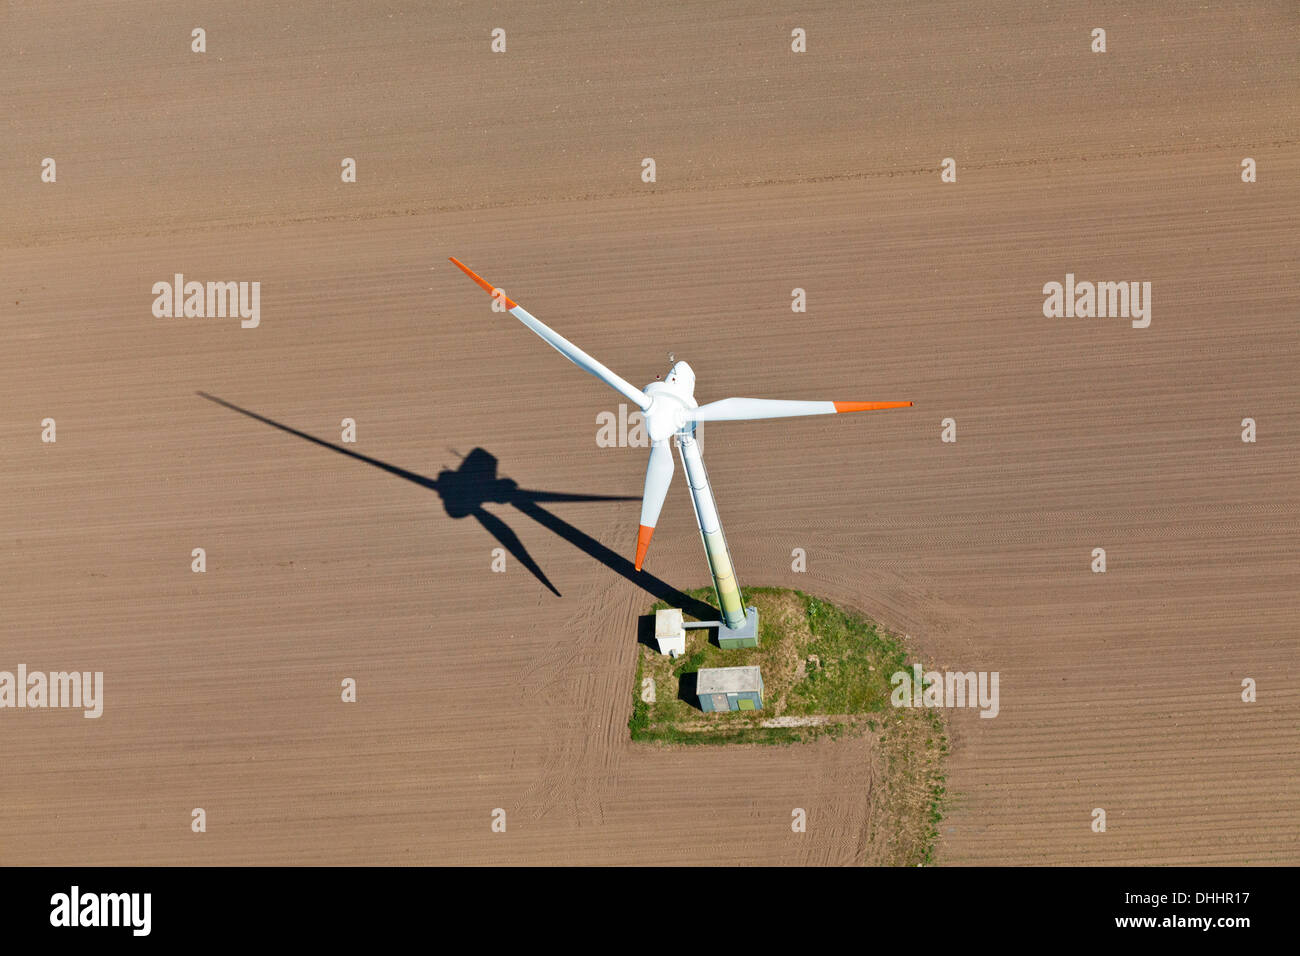 Aerial view of a wind farm near Cuxhaven, alternative power, Ecological, Cuxhaven, Lower Saxony, Germany - Stock Image